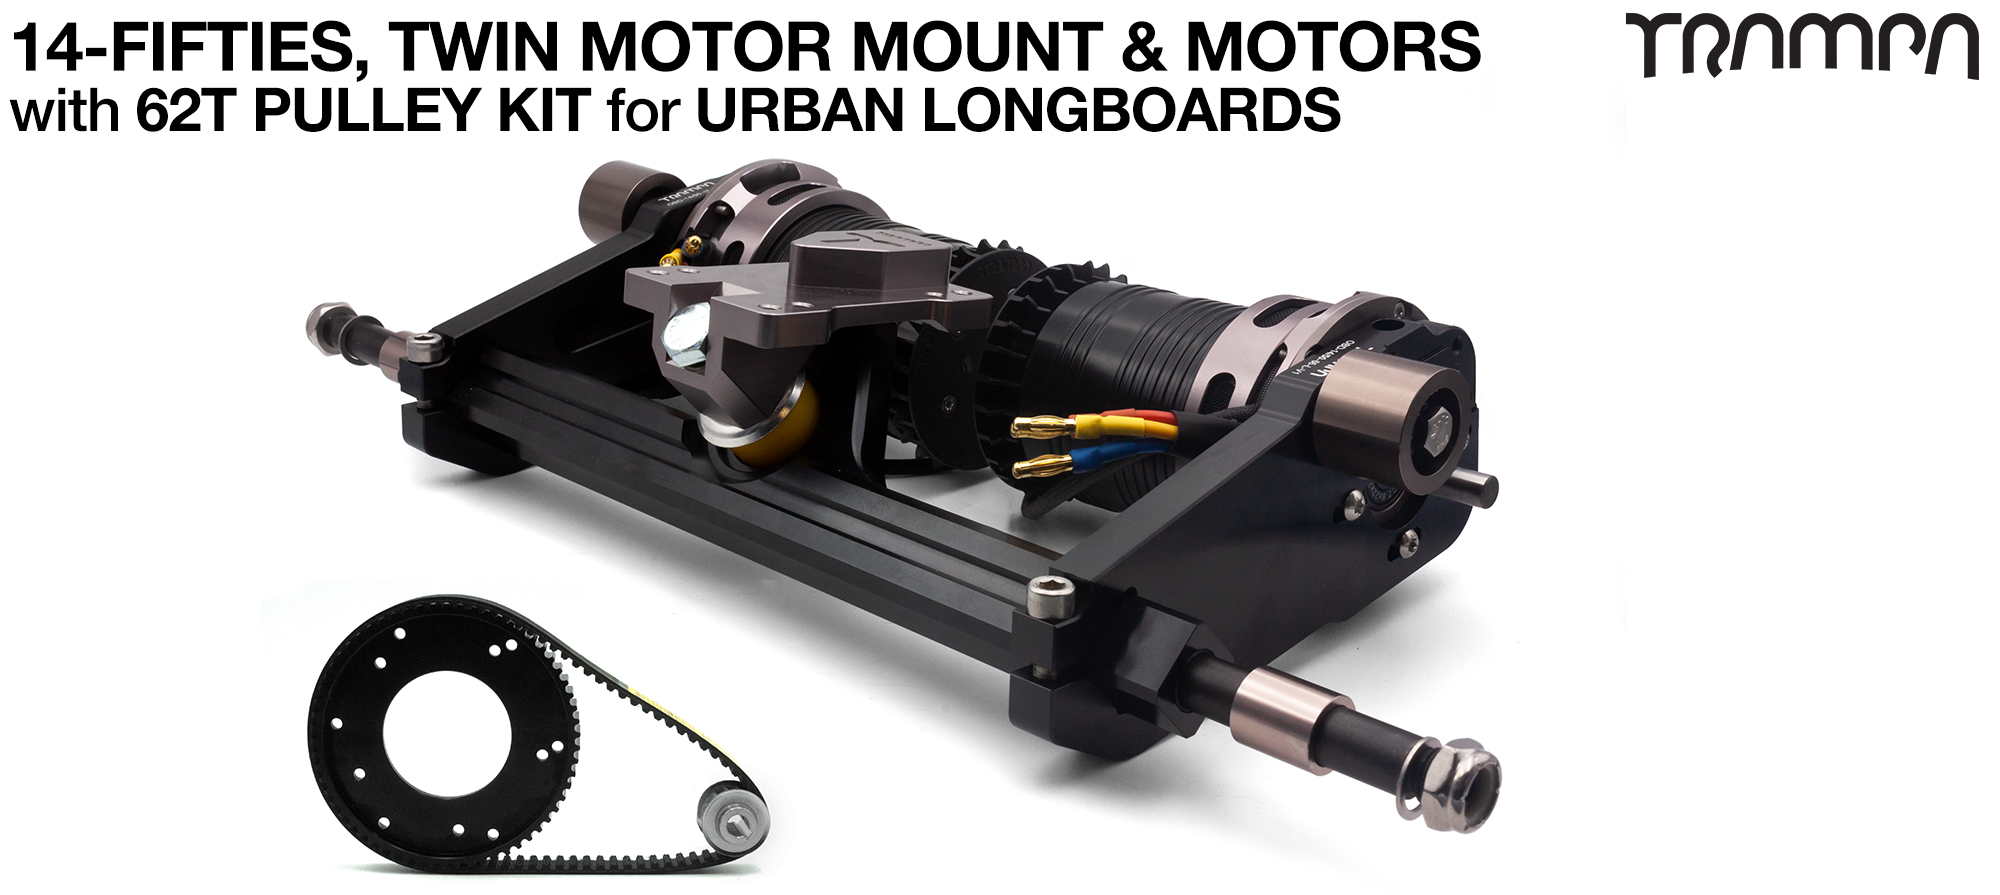 14FiFties Motor Mount with 62 Tooth URBAN  Pulley Kit & Motor & 2x 14FiFties Trucks - TWIN